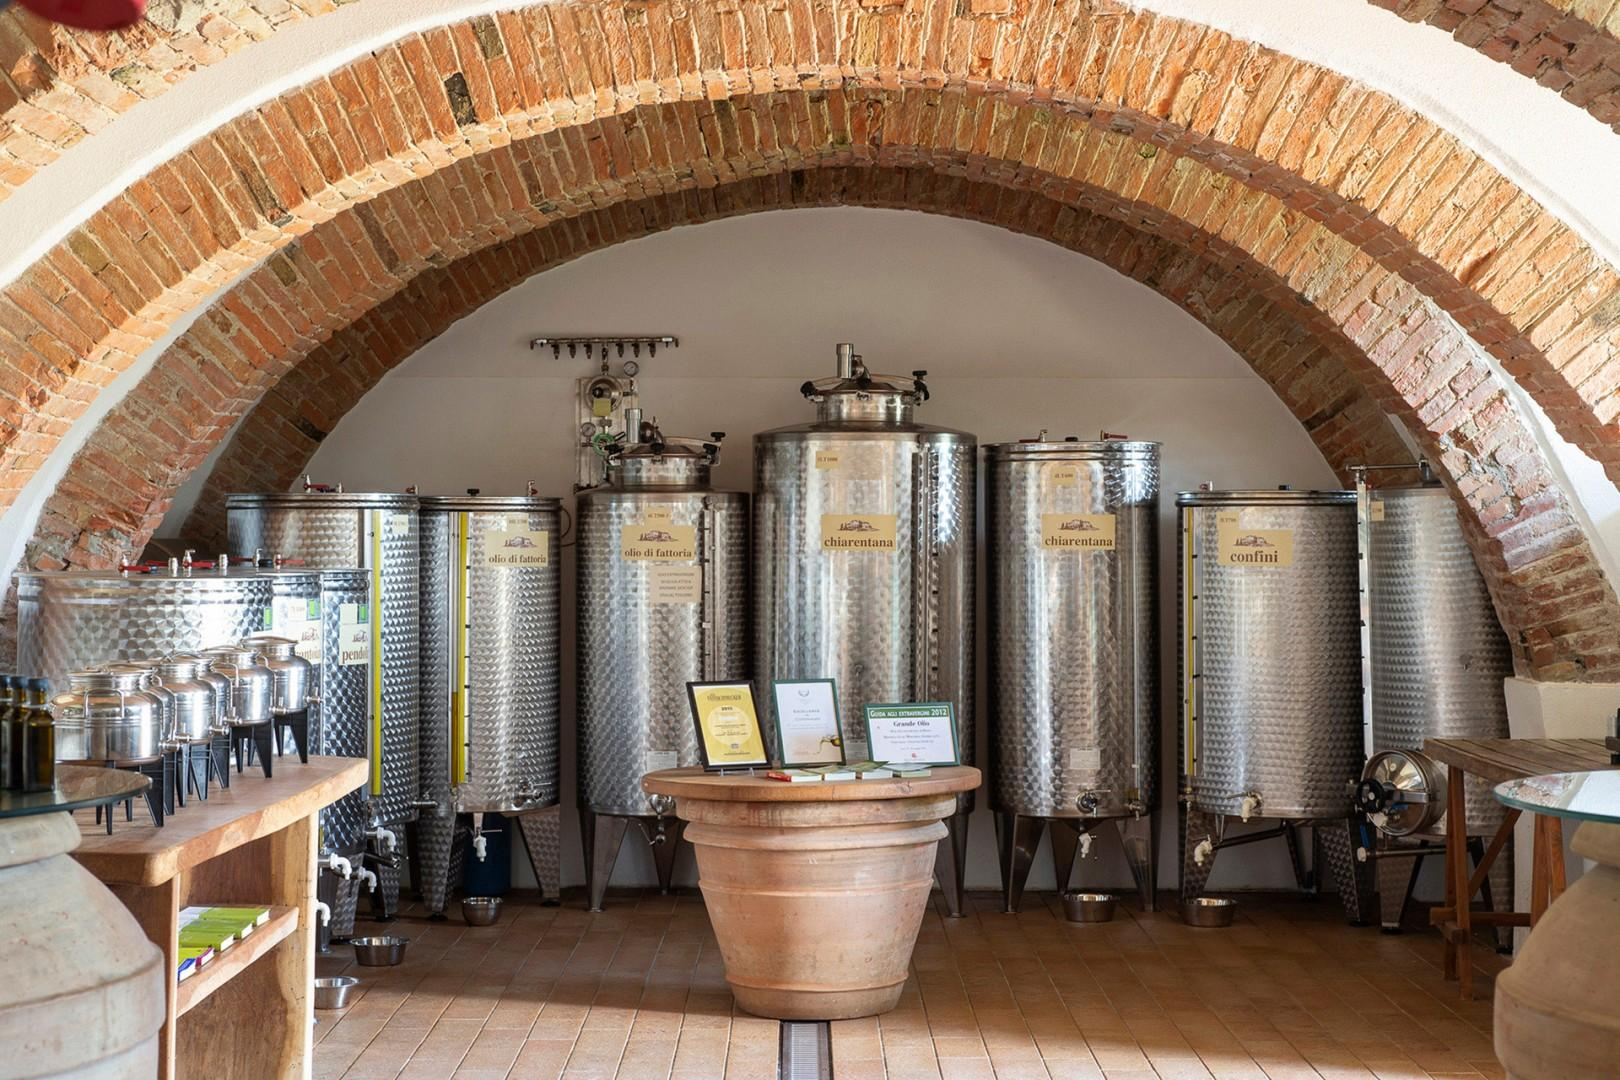 Vats of different olive oils.